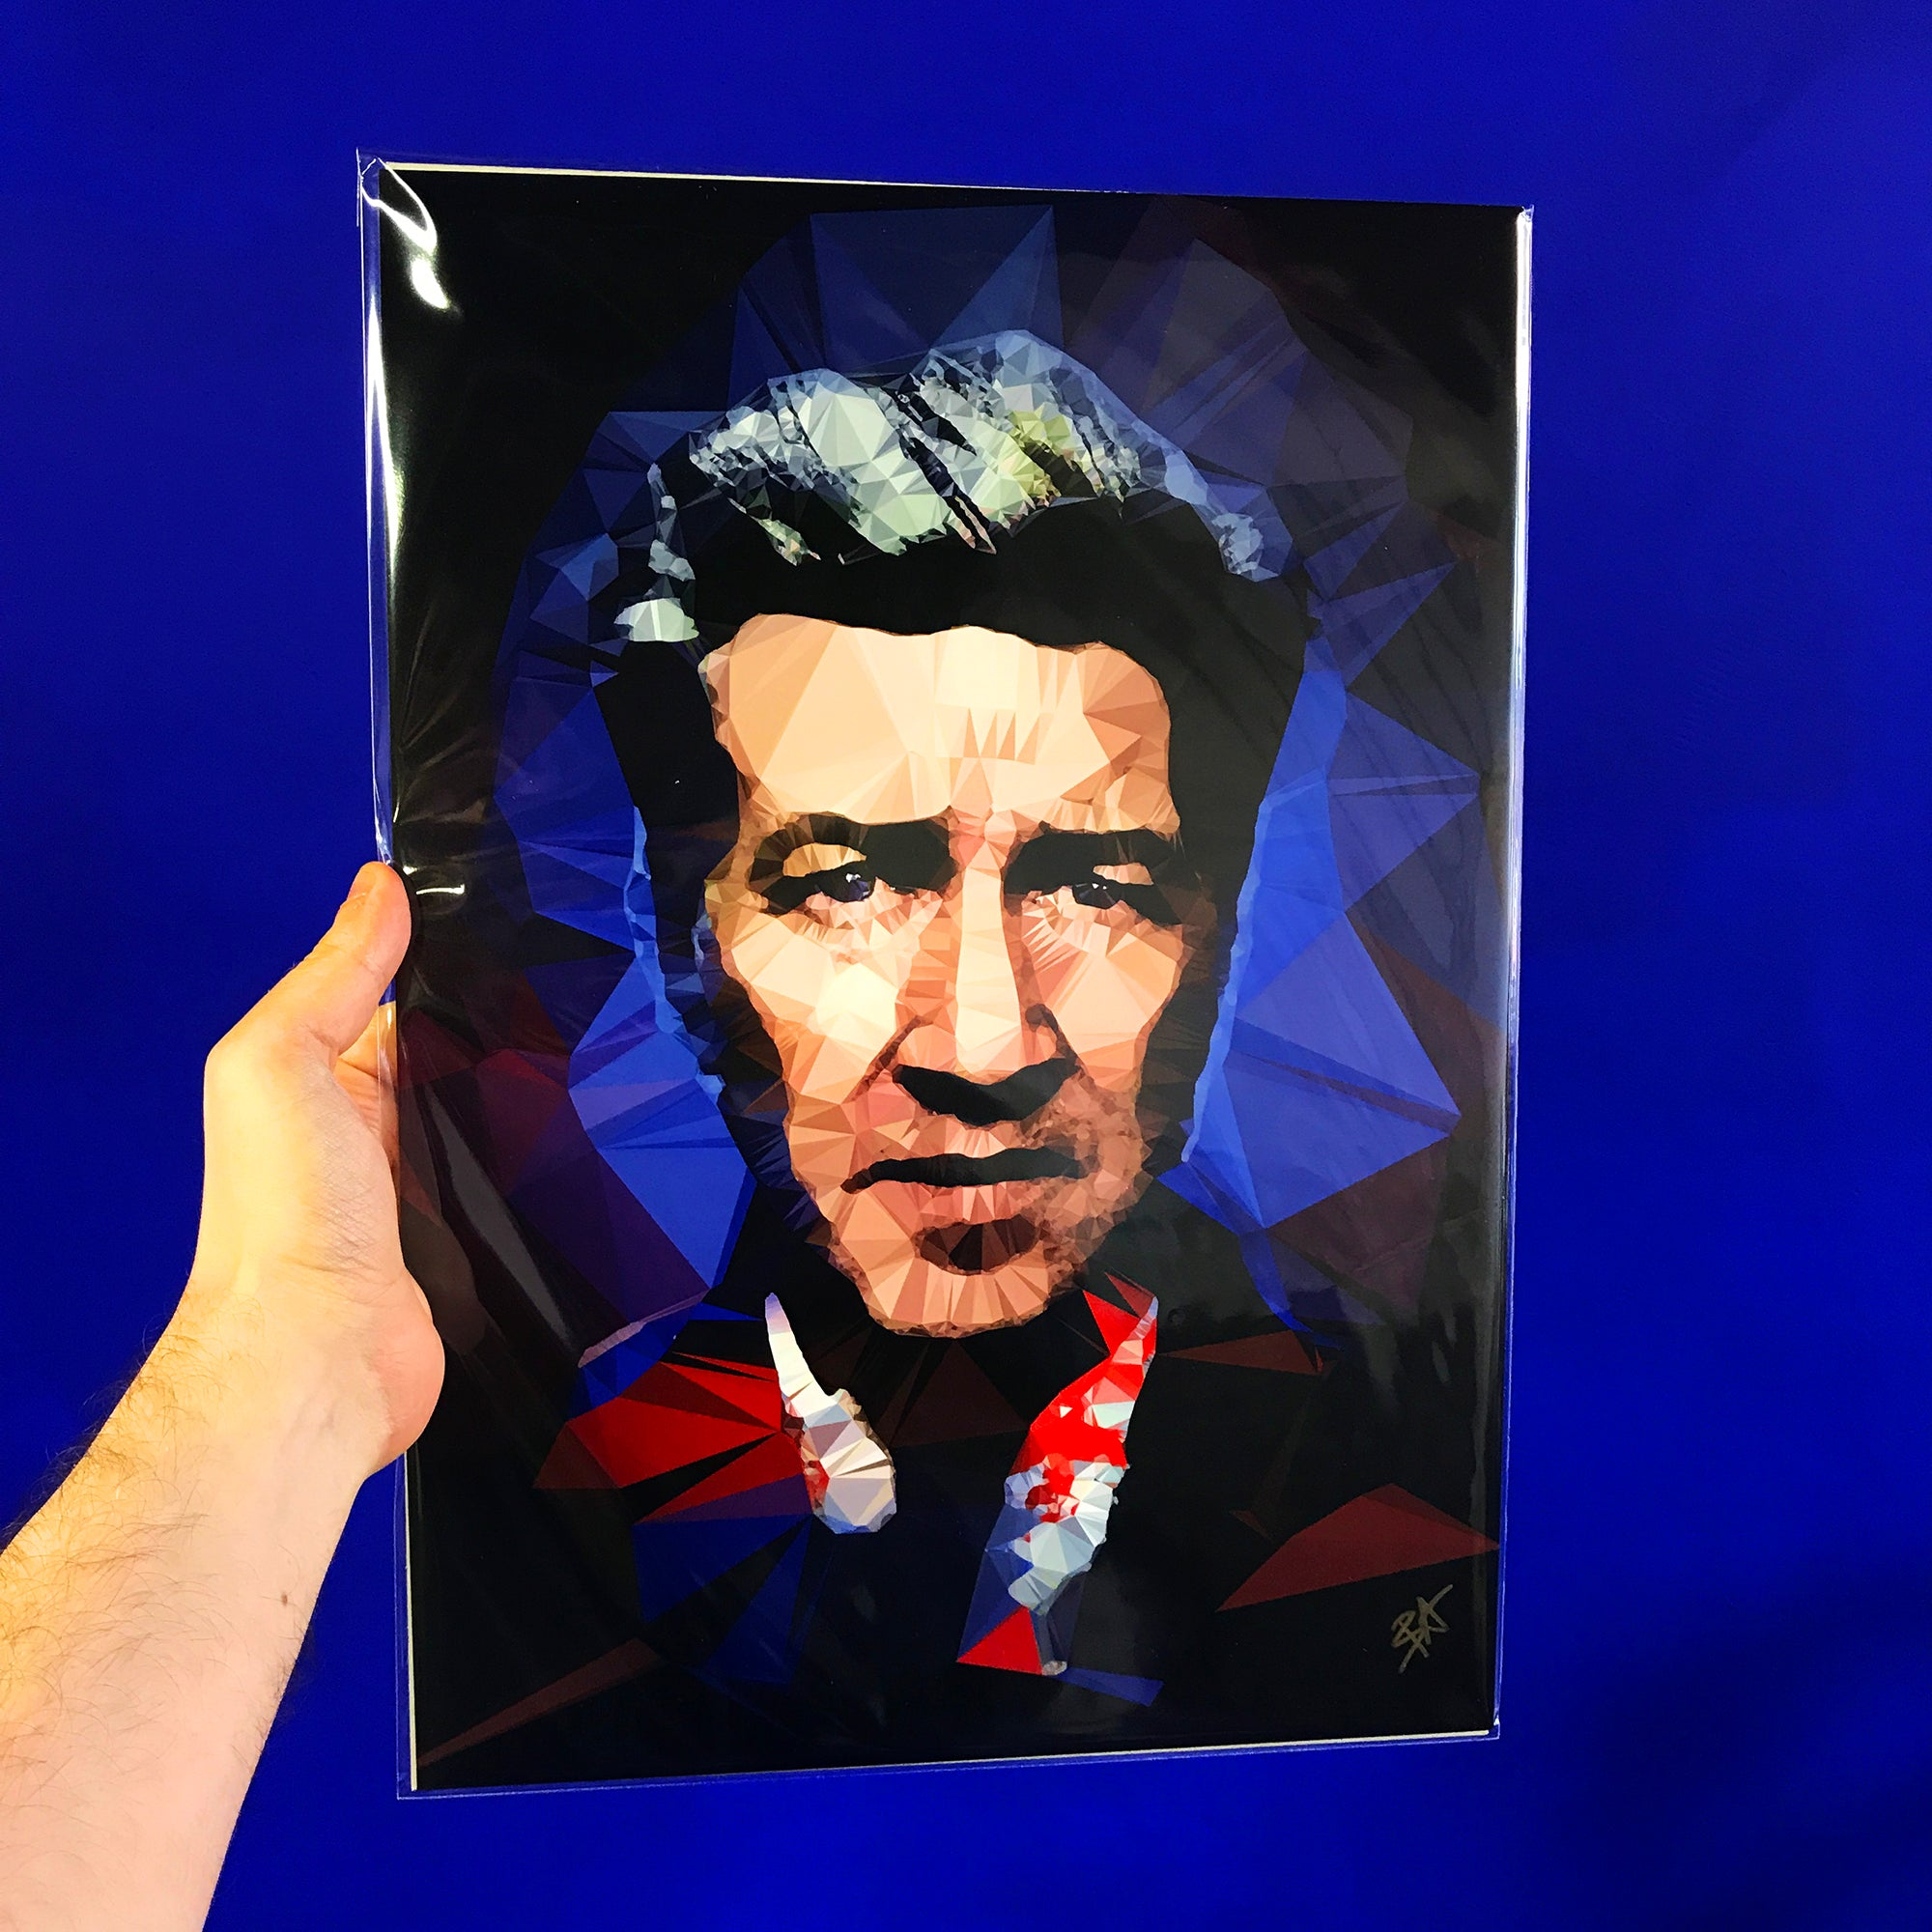 David Lynch #2 by Baiba Auria - signed art print - Egoiste Gallery - Art Gallery in Manchester City Centre